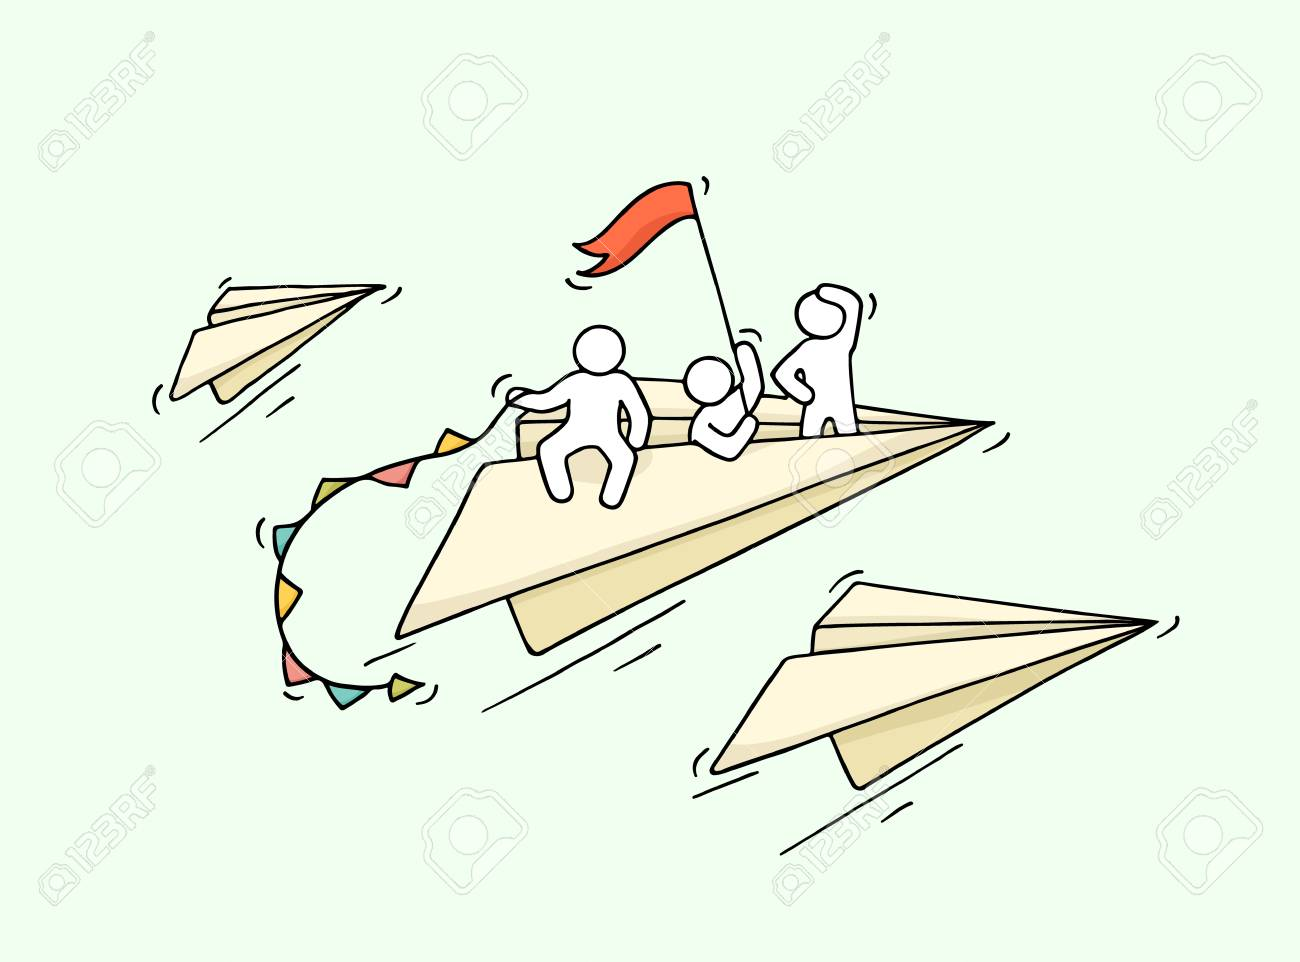 Sketch Of Flying Paper Plane With Little Workers Doodle Cute Royalty Free Cliparts Vectors And Stock Illustration Image 72940405